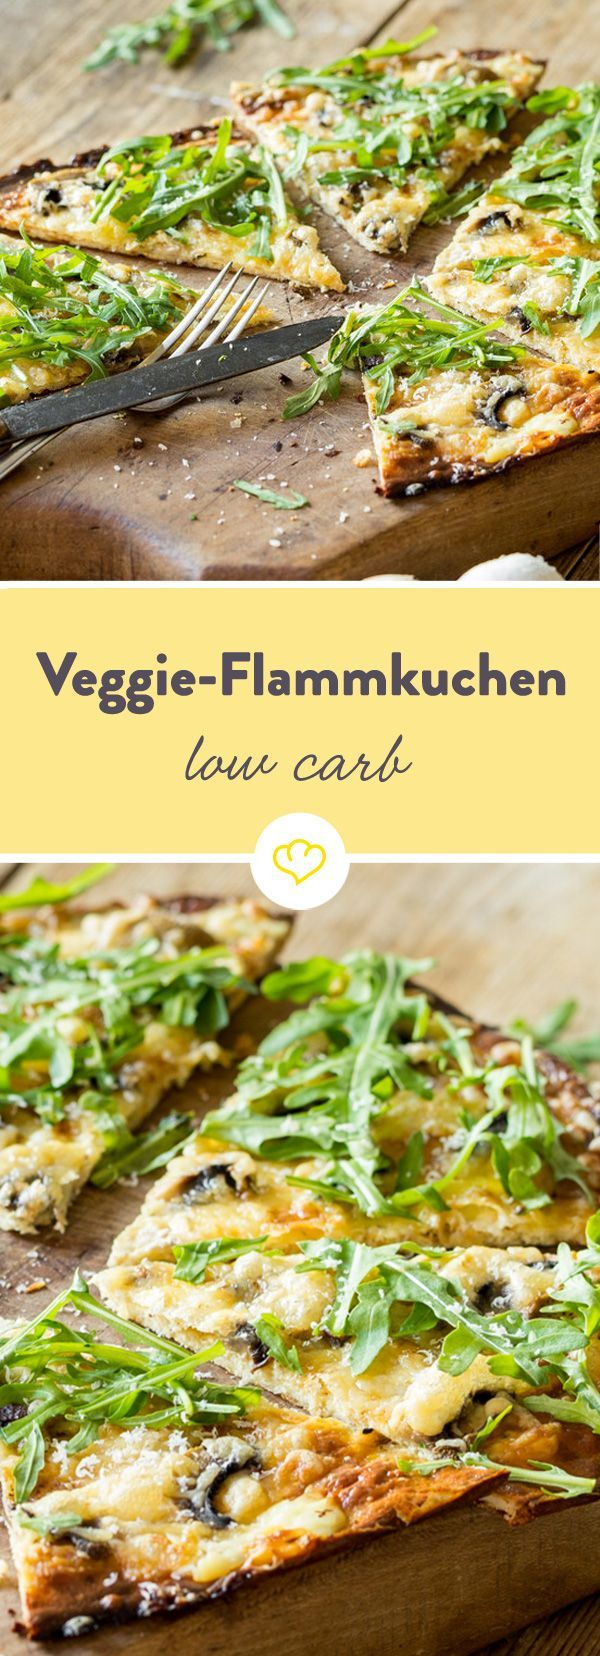 Low-Carb-Flammkuchen mit Rucola und Pilzen #lowcarbeating